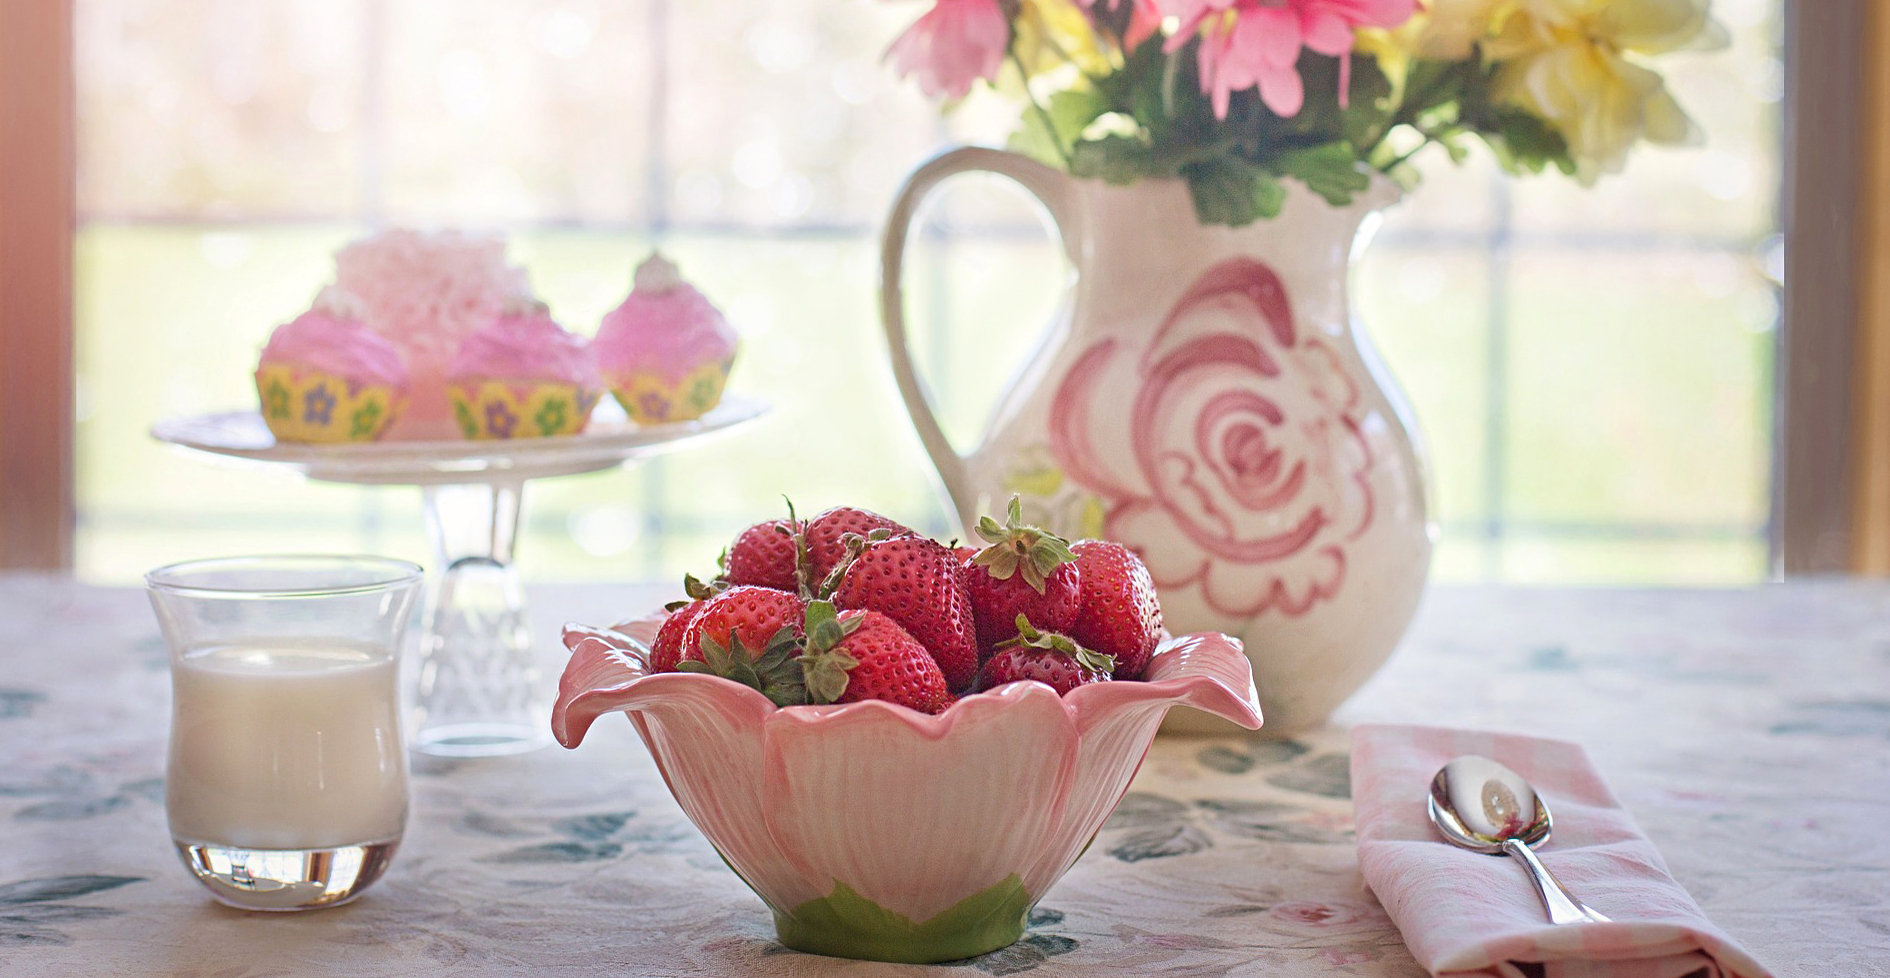 Strawberries are an easy fruit to grow in your berry garden.